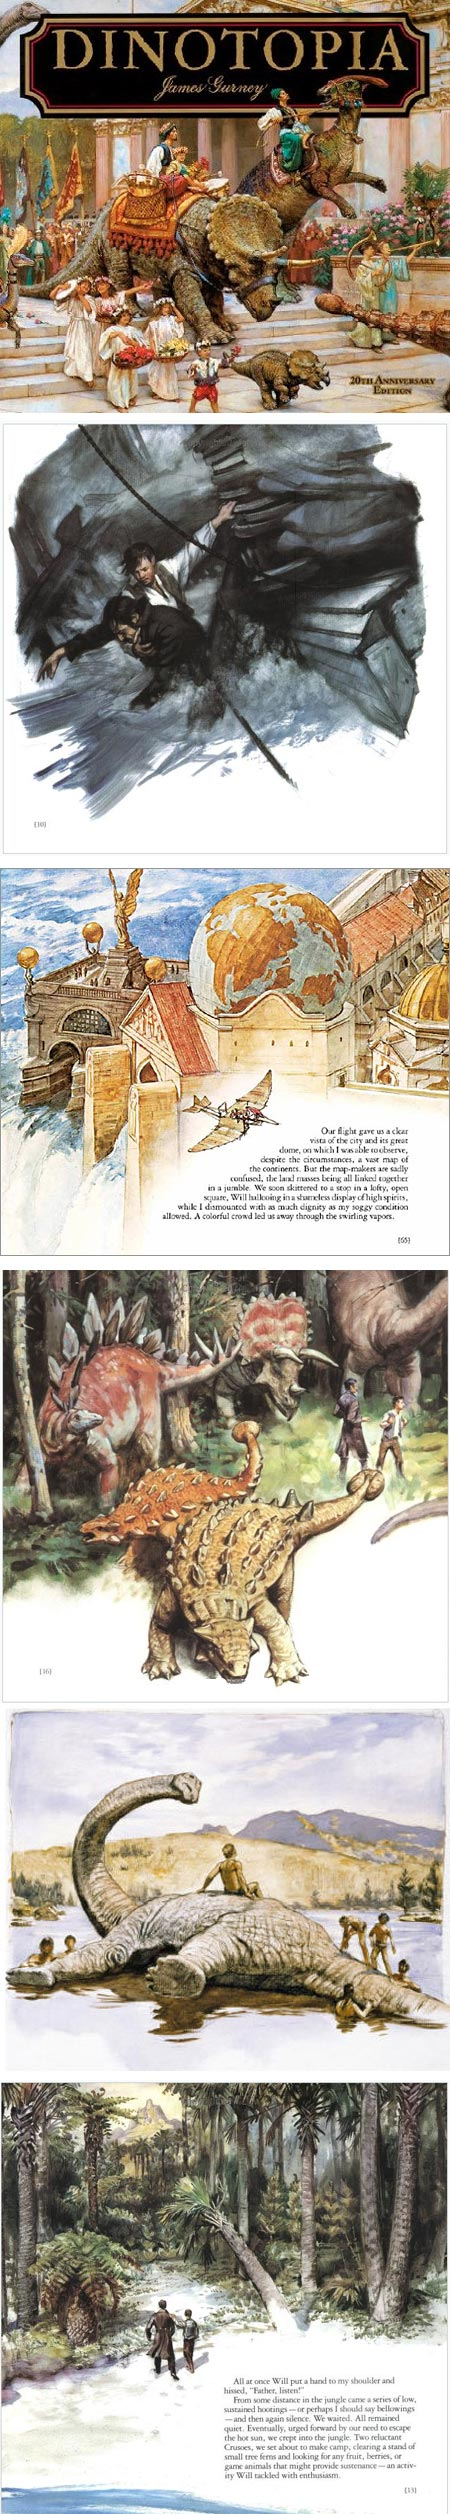 James Gurney's Dinotopia 20th Anniversary Edition